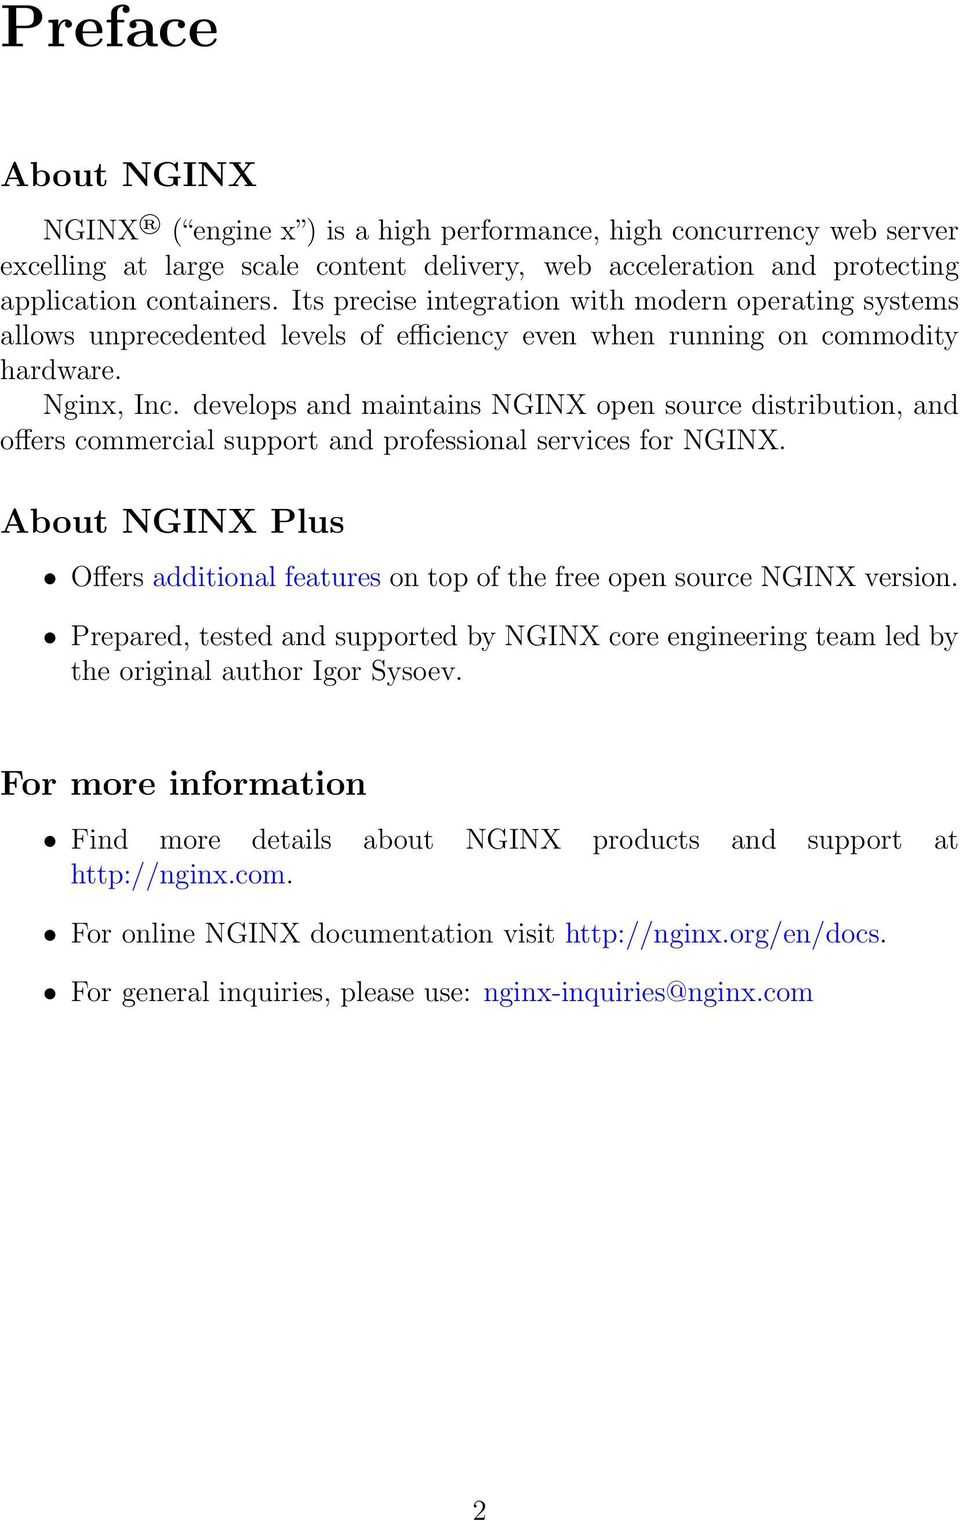 Nginx, Inc  Modules reference  NGINX Plus - release 3, based on core